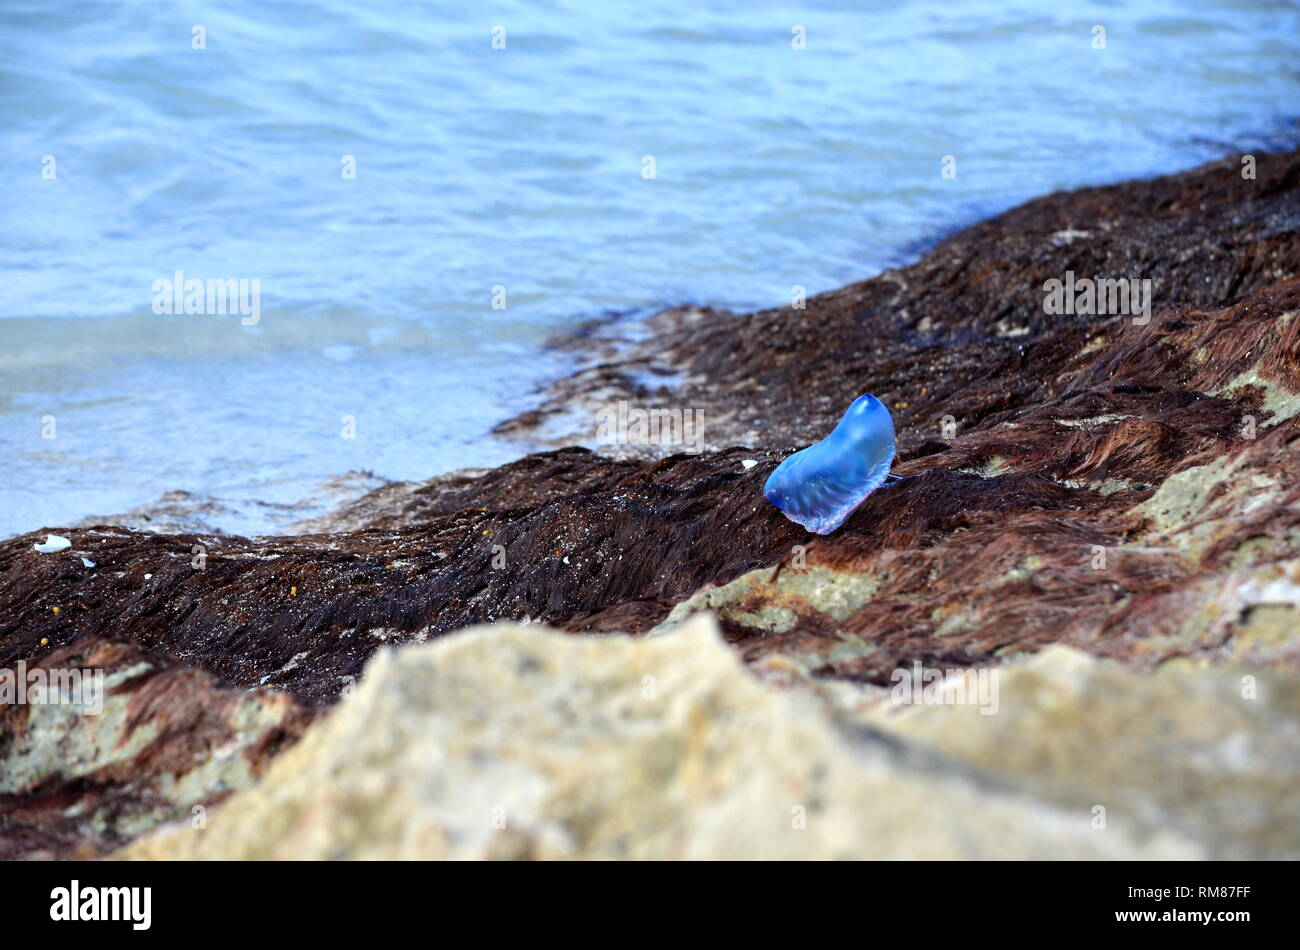 Atlantic Portuguese man-of-war (Physalia physalis) jellyfish-like marine hydrozoan with poisonous tentacles washed out on shore of Caribbean island. - Stock Image